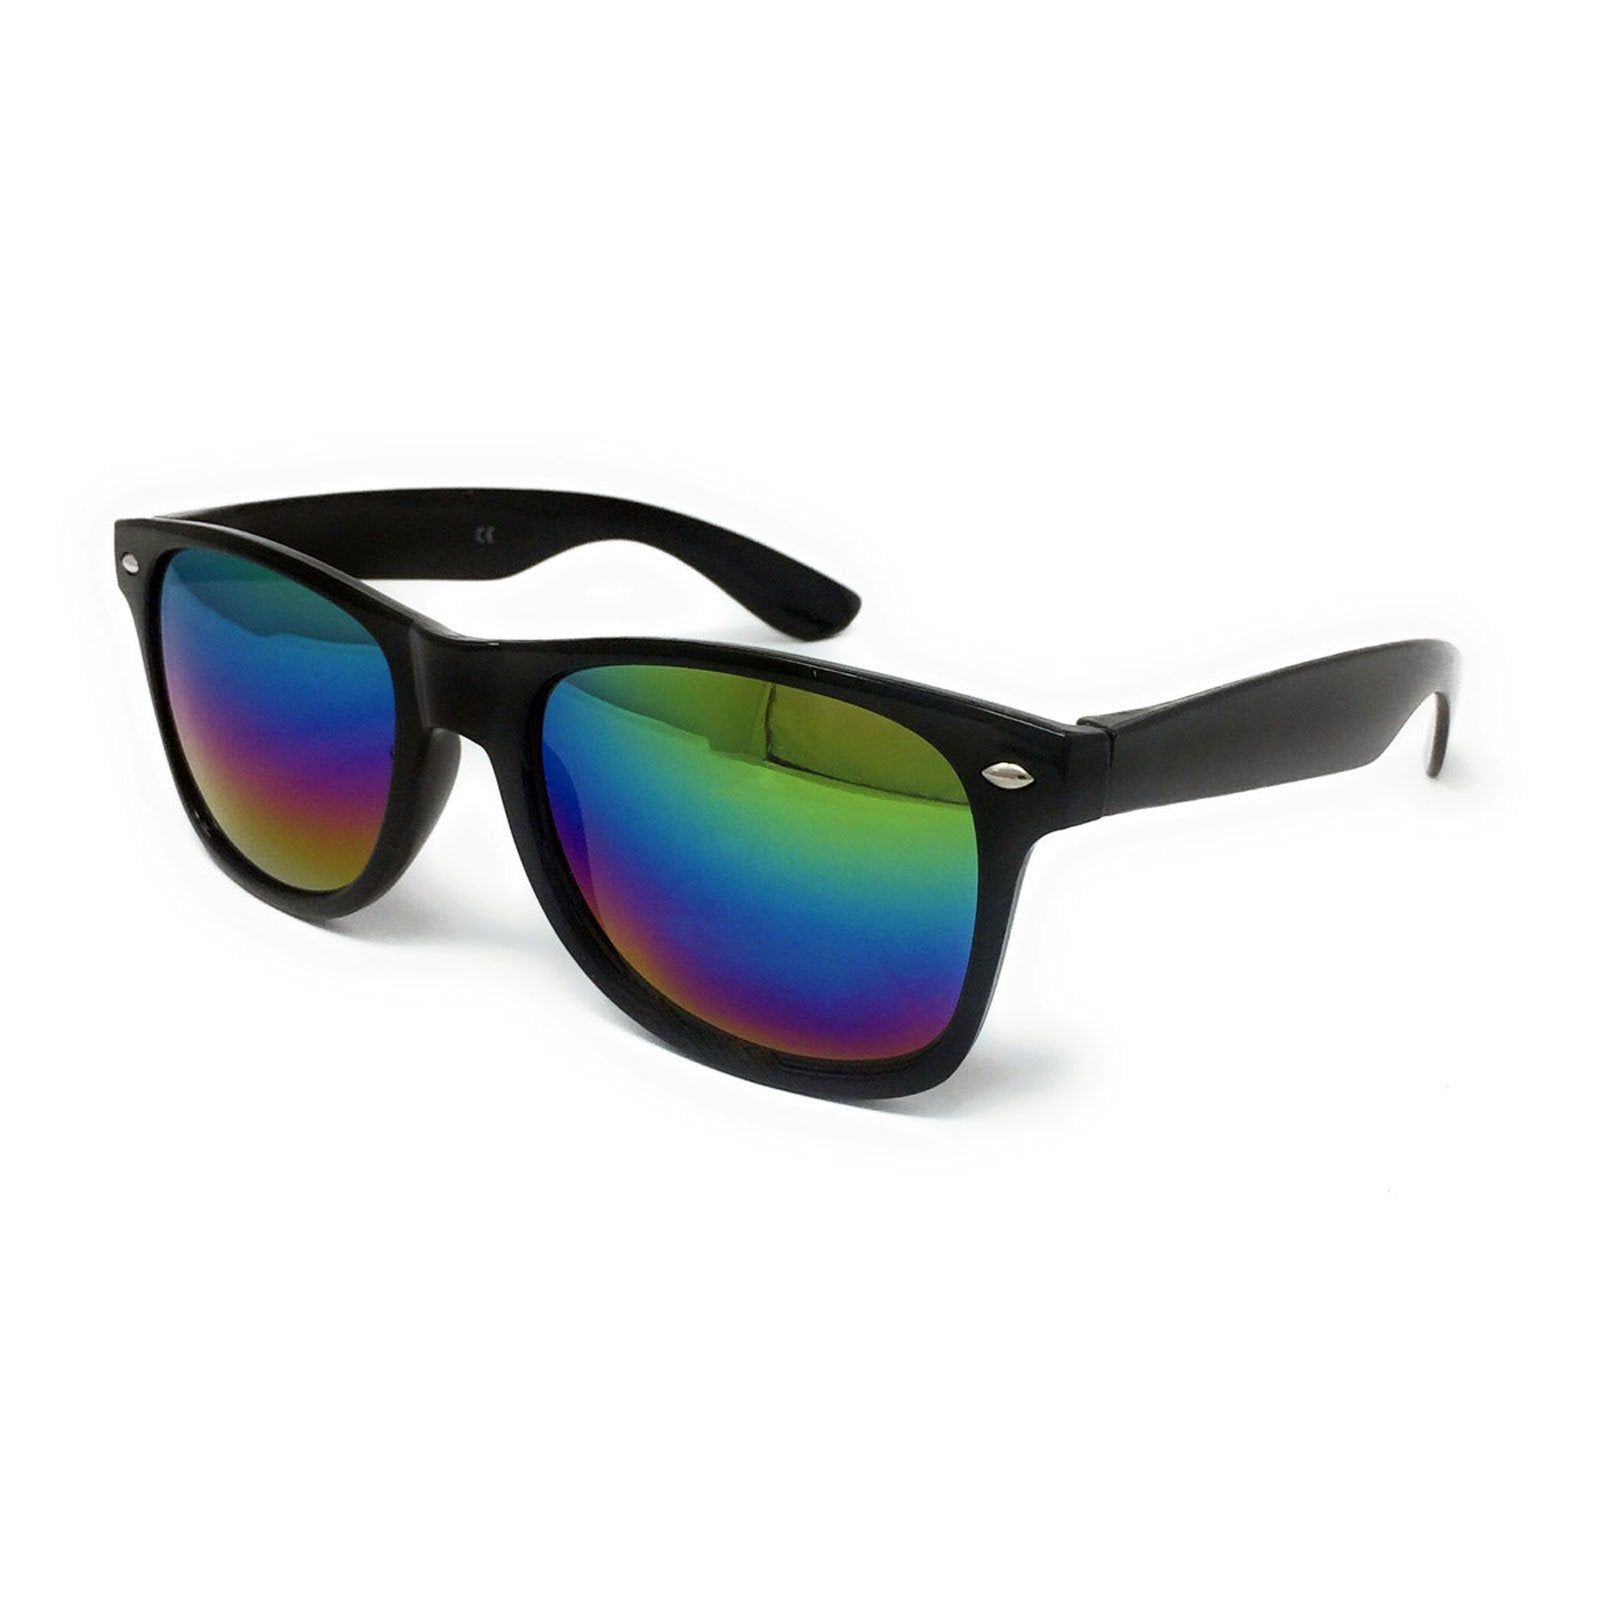 Wholesale Wayfarer Sunglasses - Black Frame, Rainbow Mirrored Lens